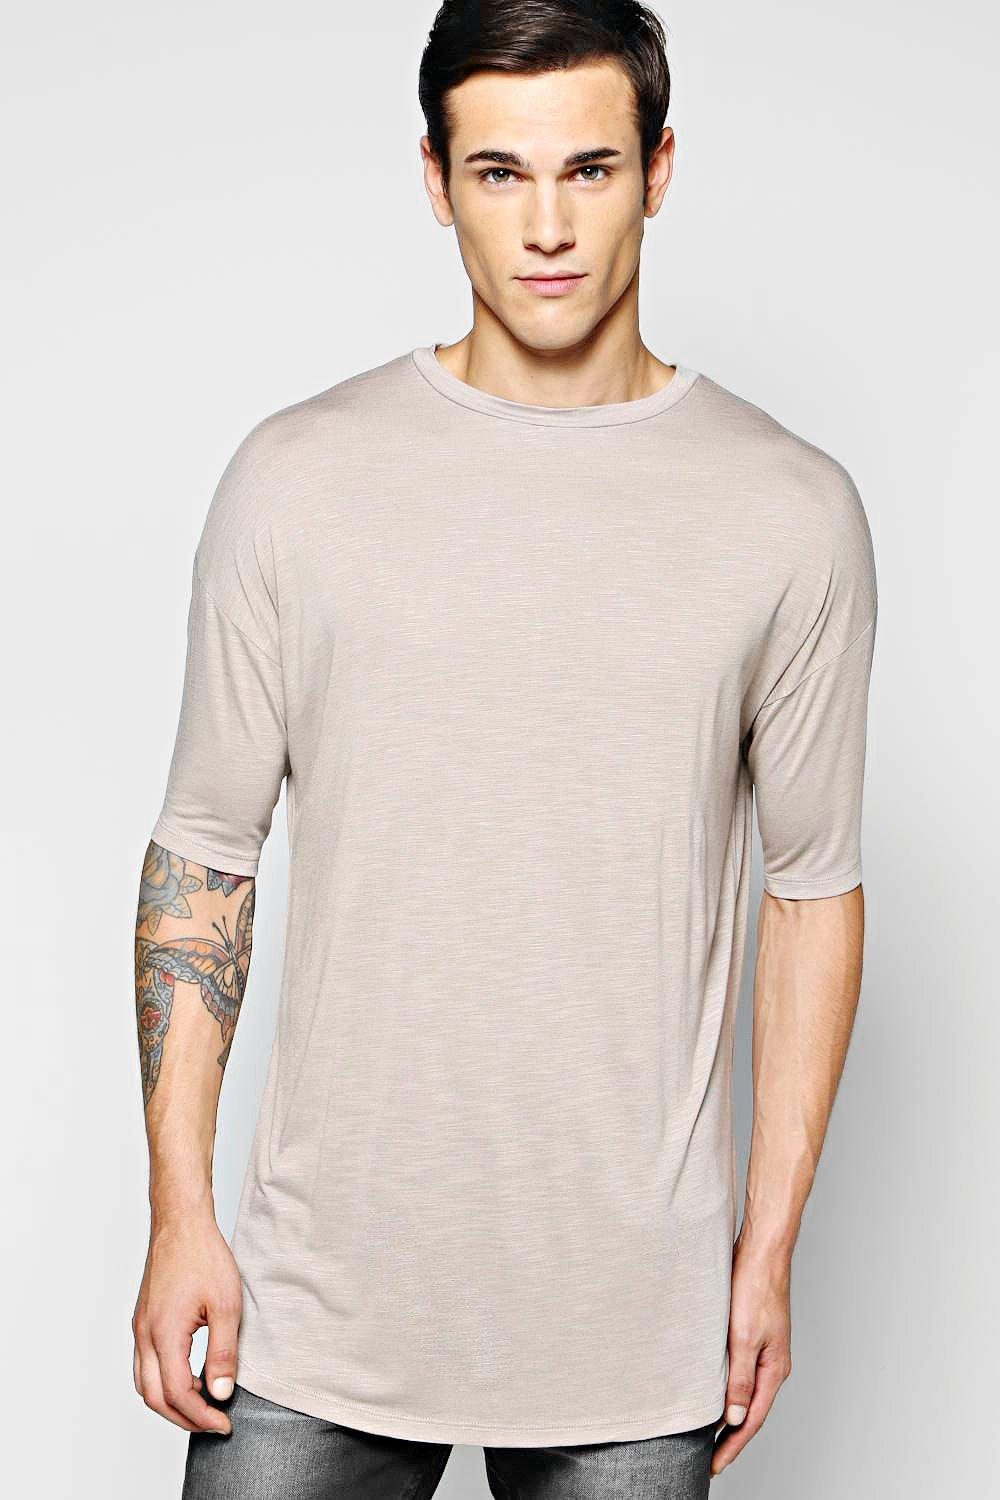 Oversized Boxy Fit T Shirt